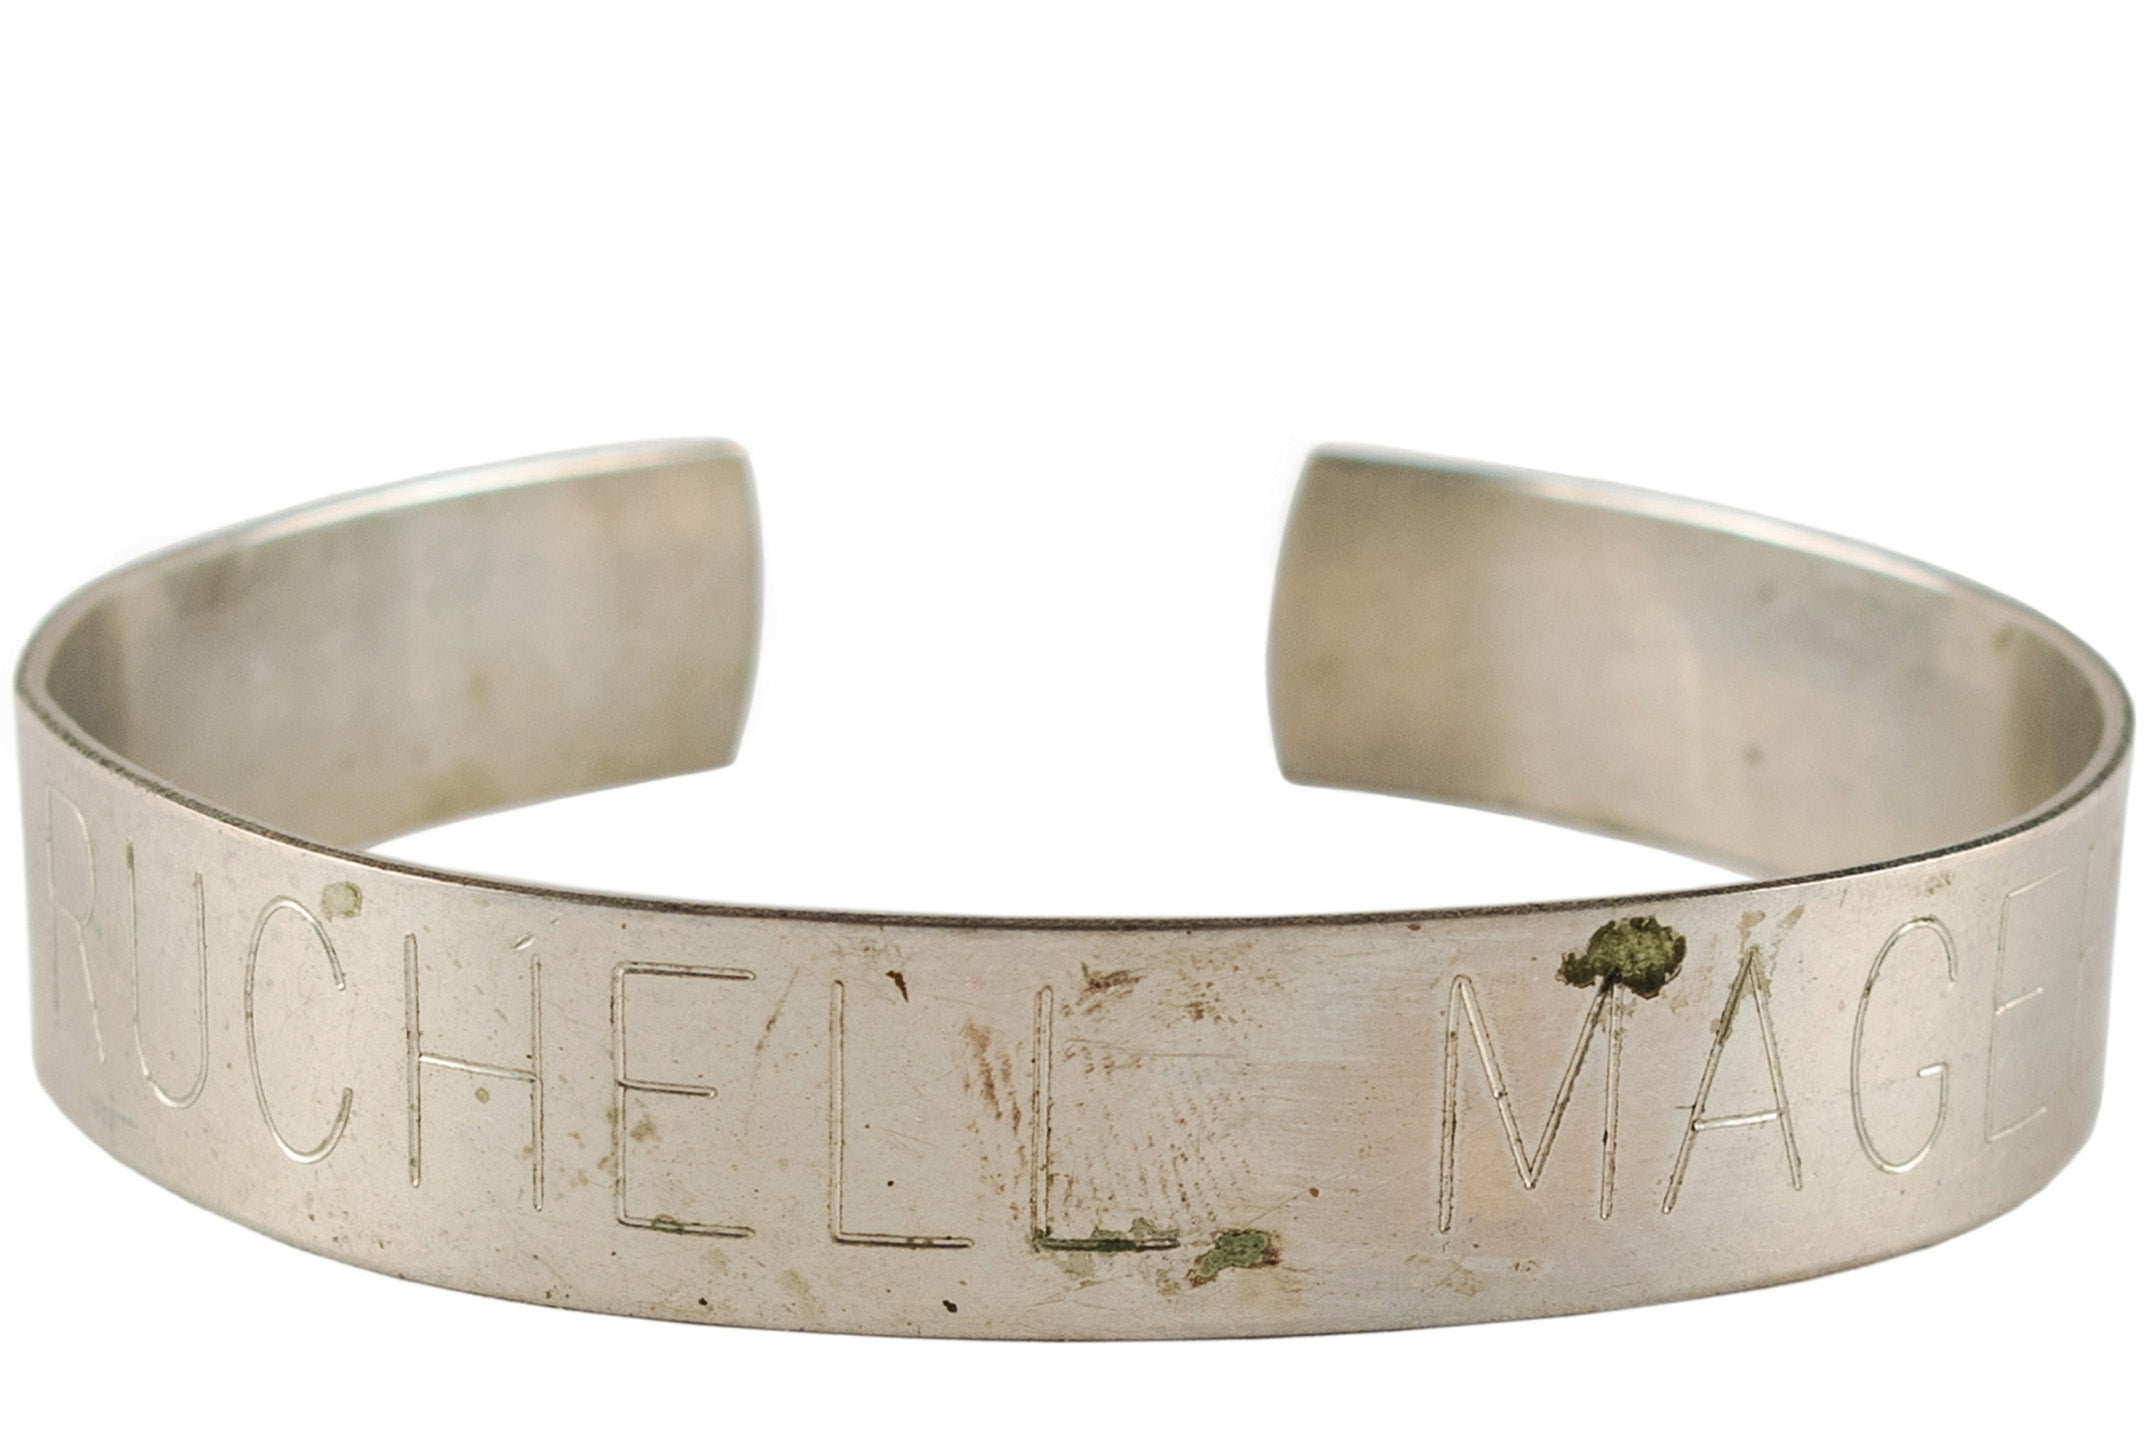 A metal bracelet engraved with the name Ruchell Magee.